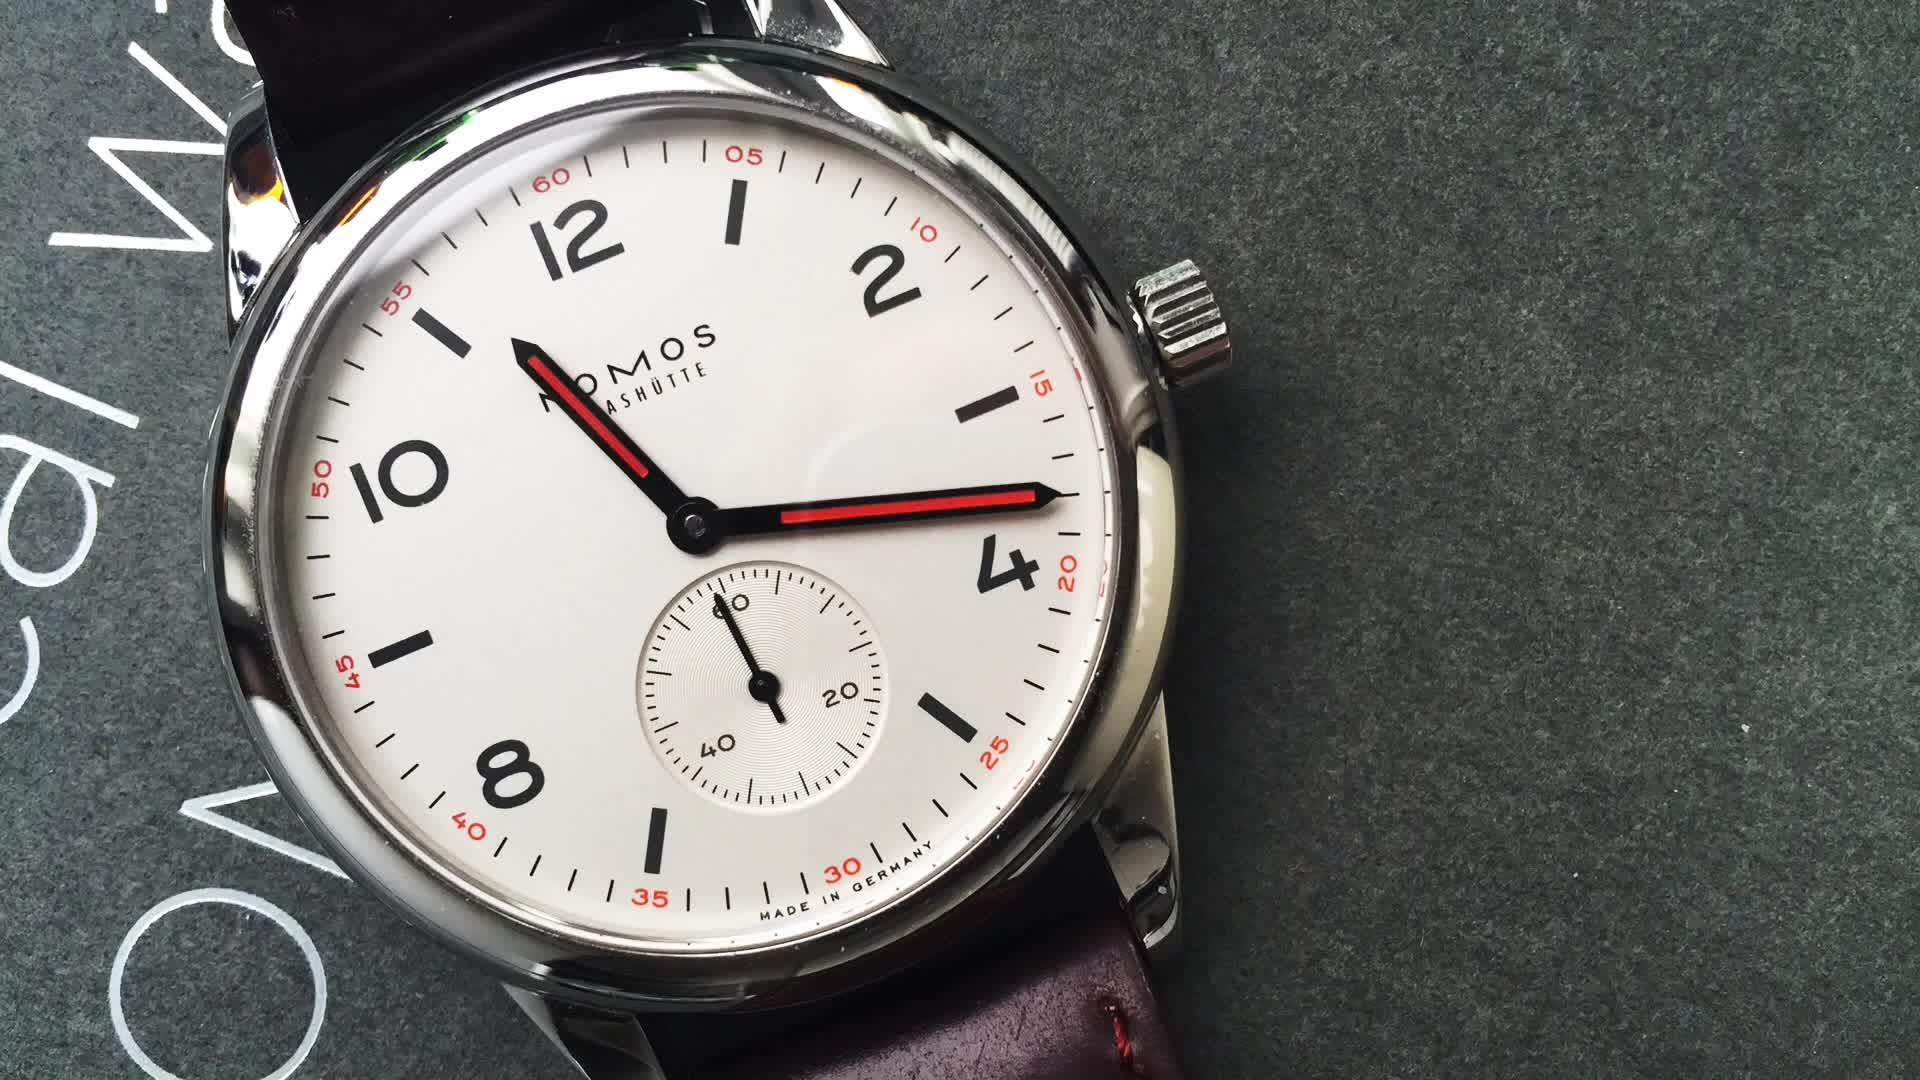 watches, [Nomos] Club timelapse - wanted to try it too (reddit) GIFs